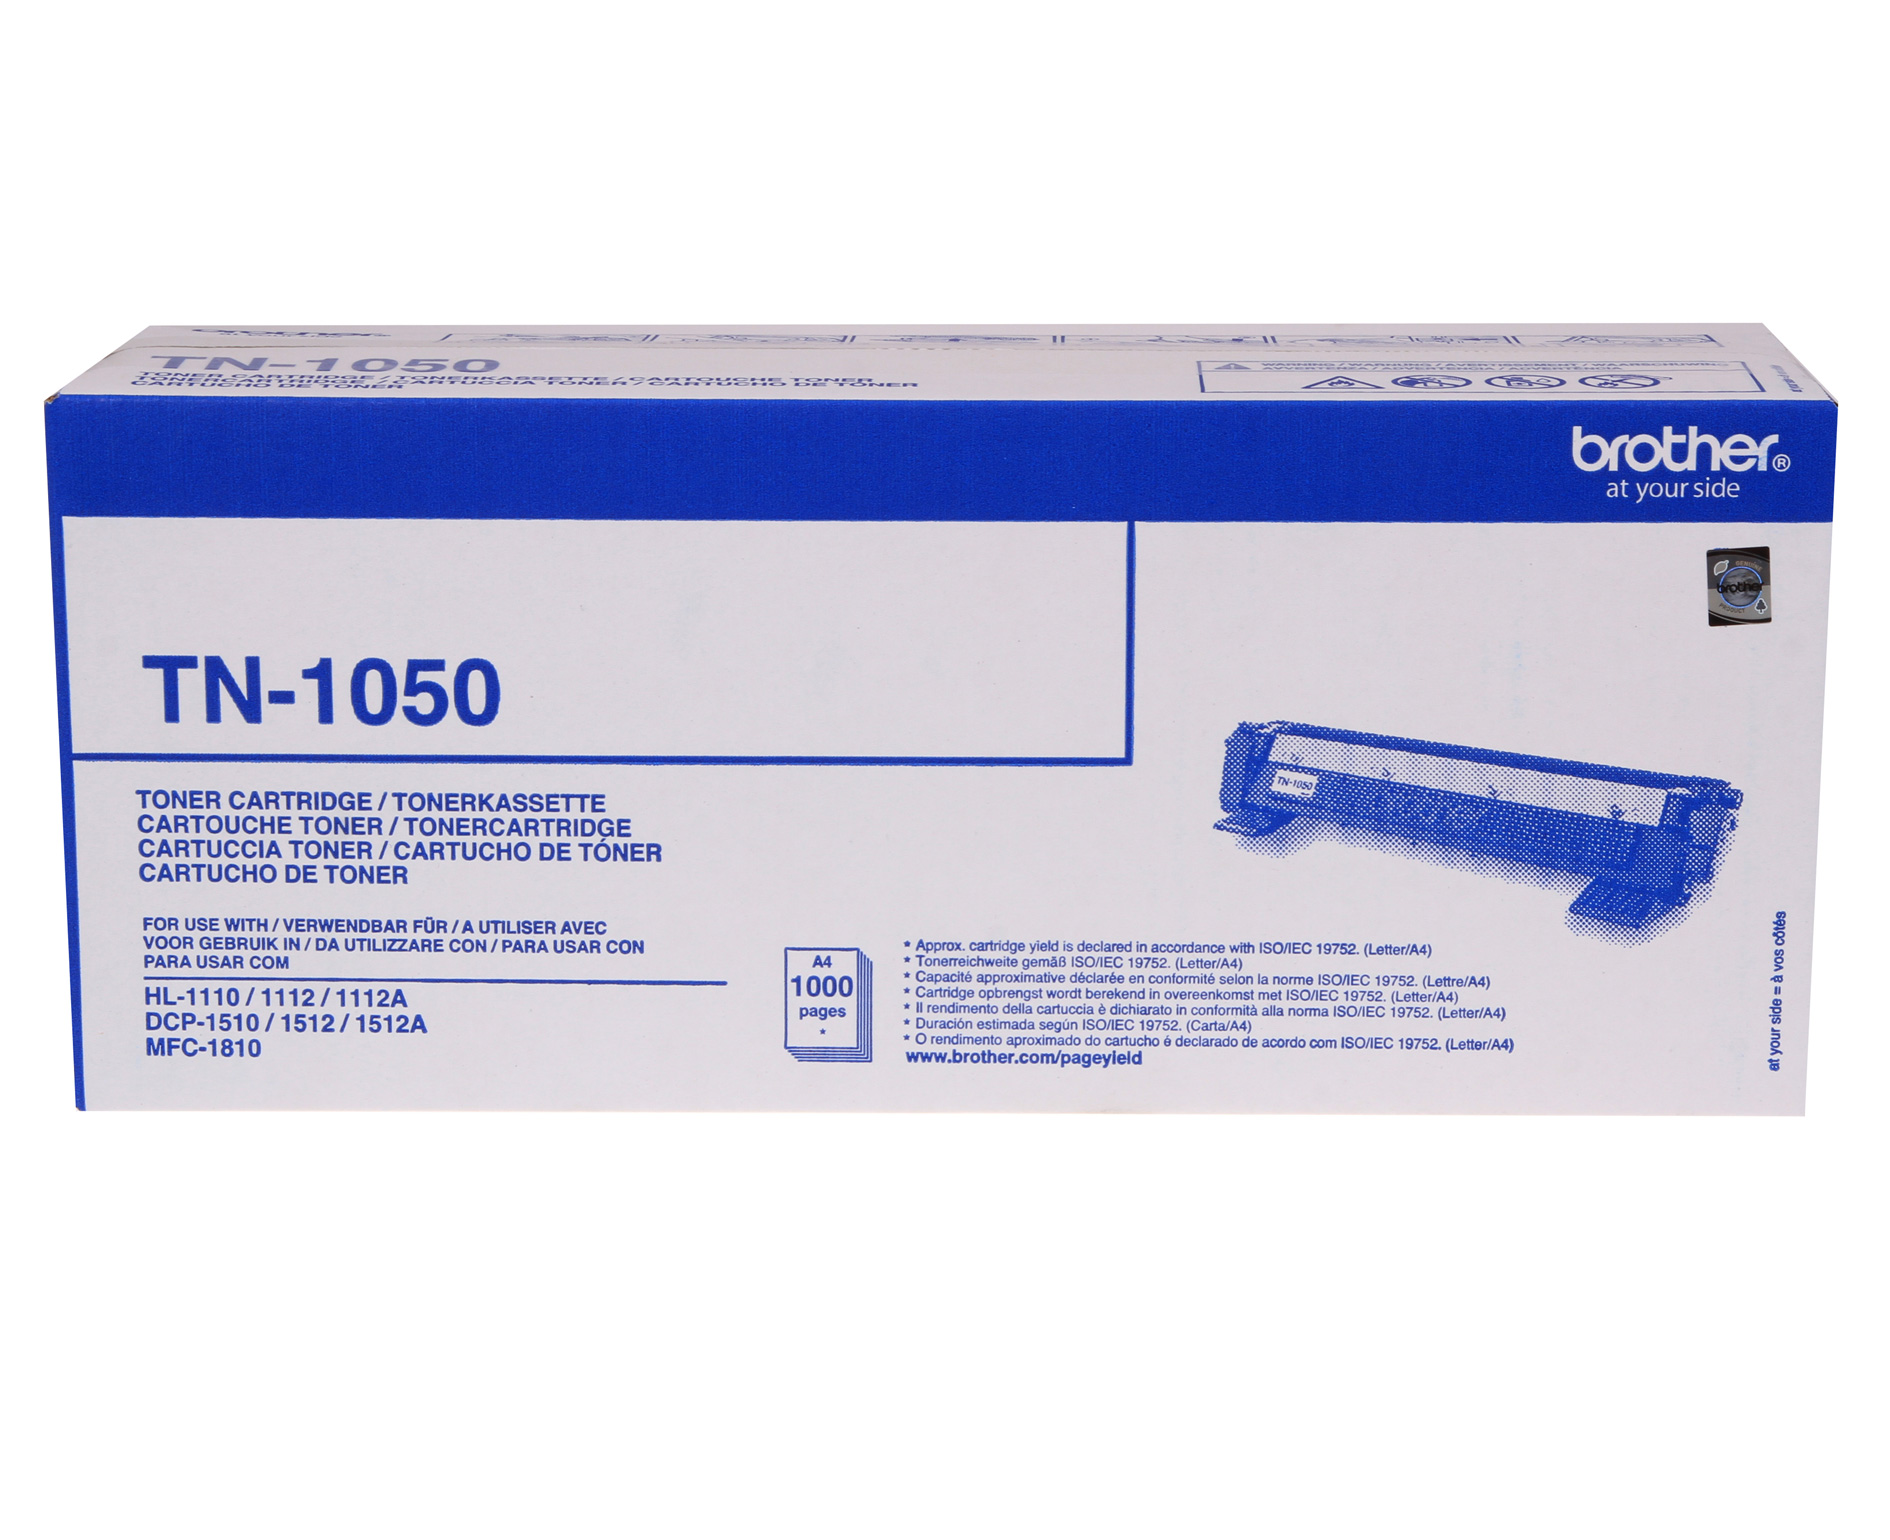 Brother tn-1050 toner originale, durata 1.000 pagine